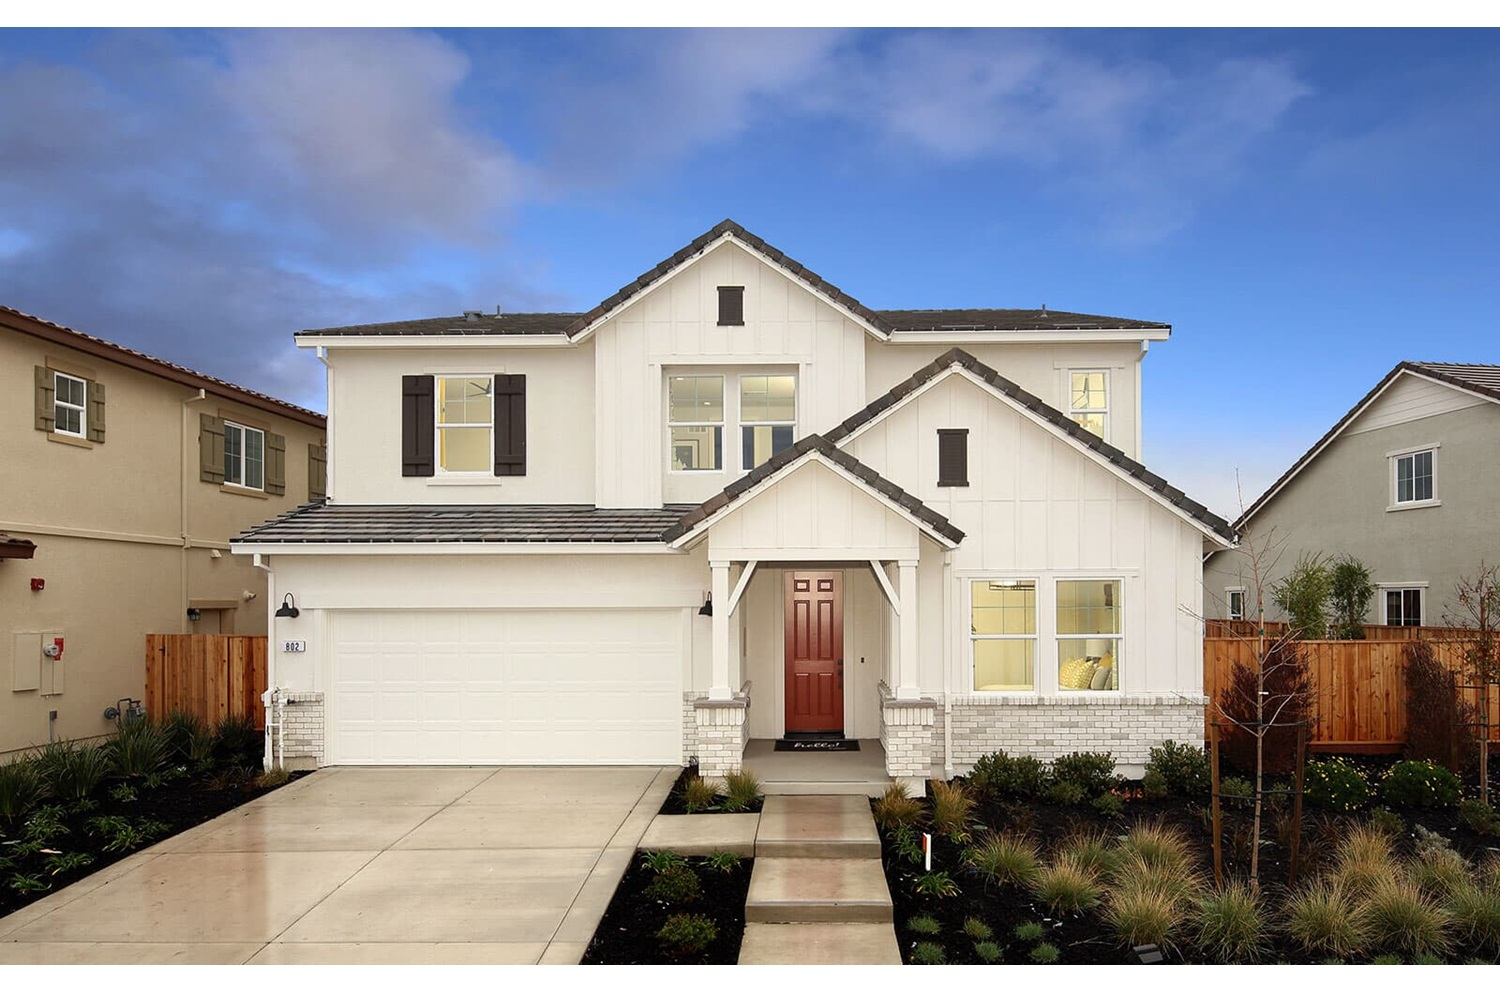 Residence 4 Exterior | Southport | New Homes in Oakley, CA | Brookfield Residential